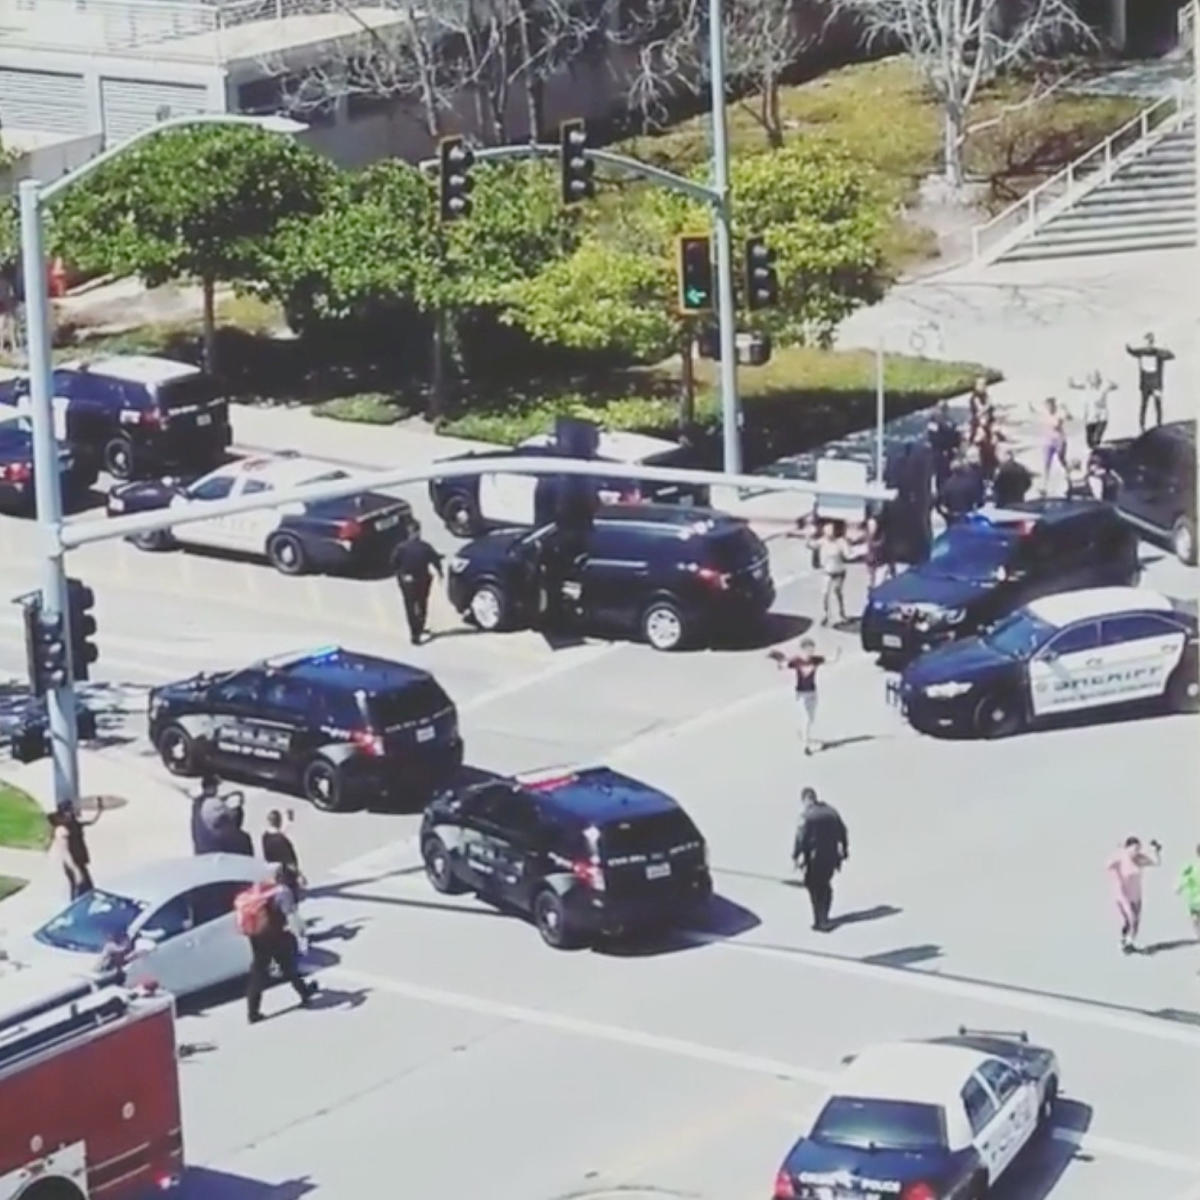 Police respond to reports of shooting at California YouTube